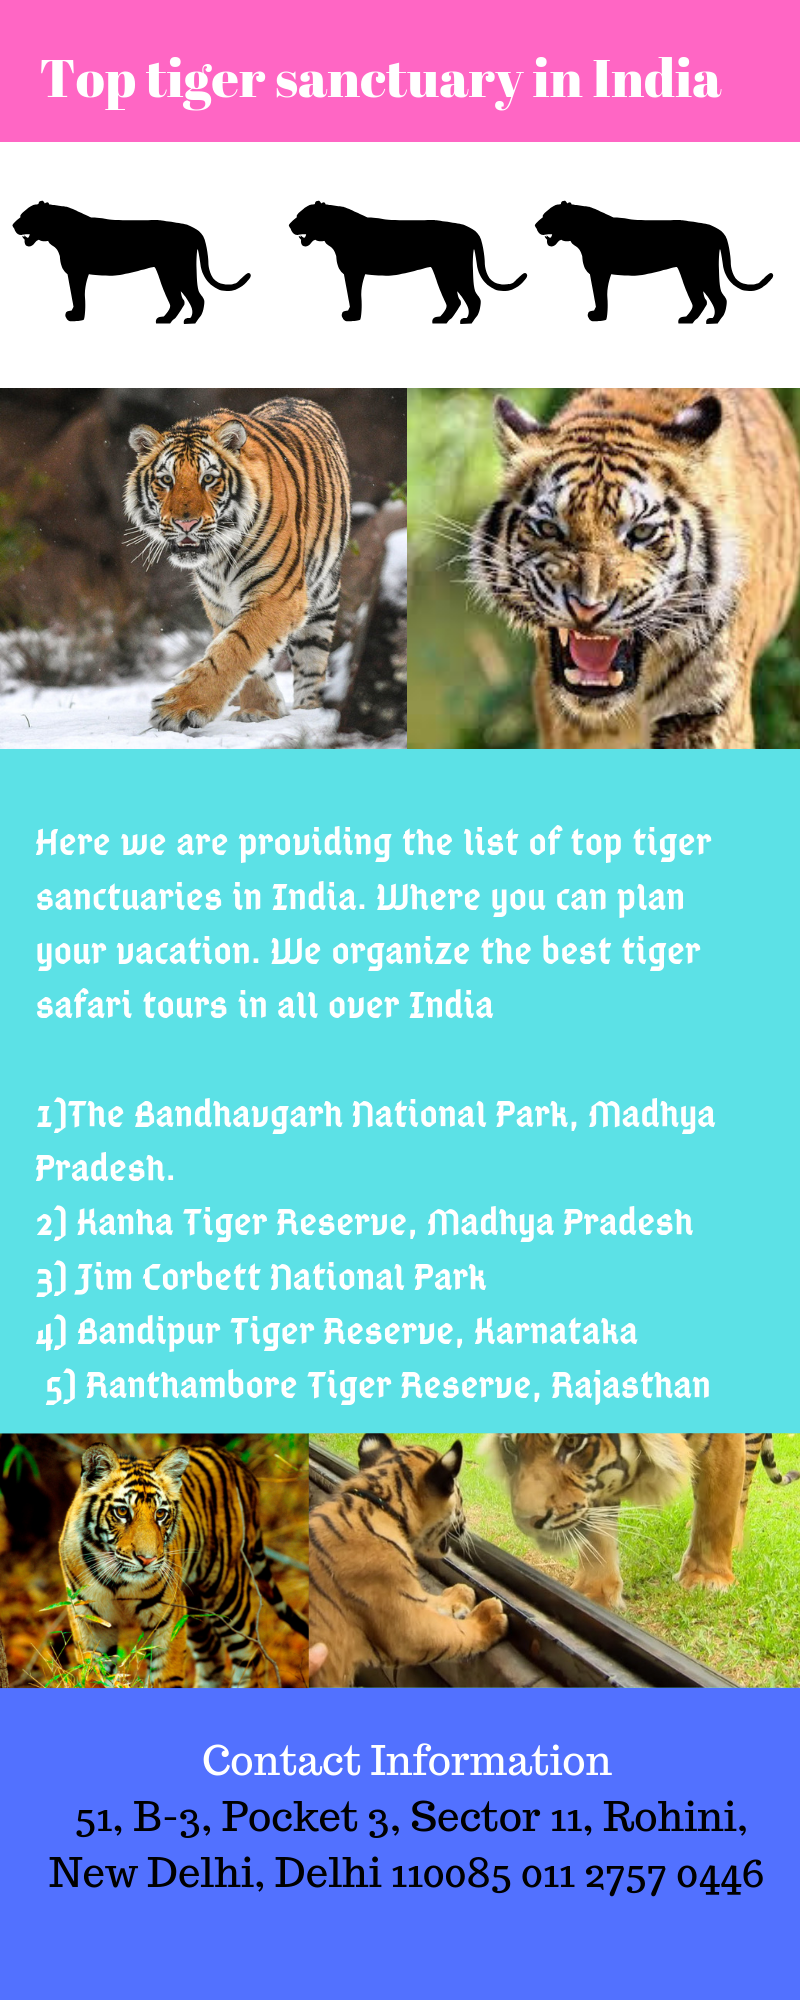 Here we are providing the list of top tiger sanctuaries in